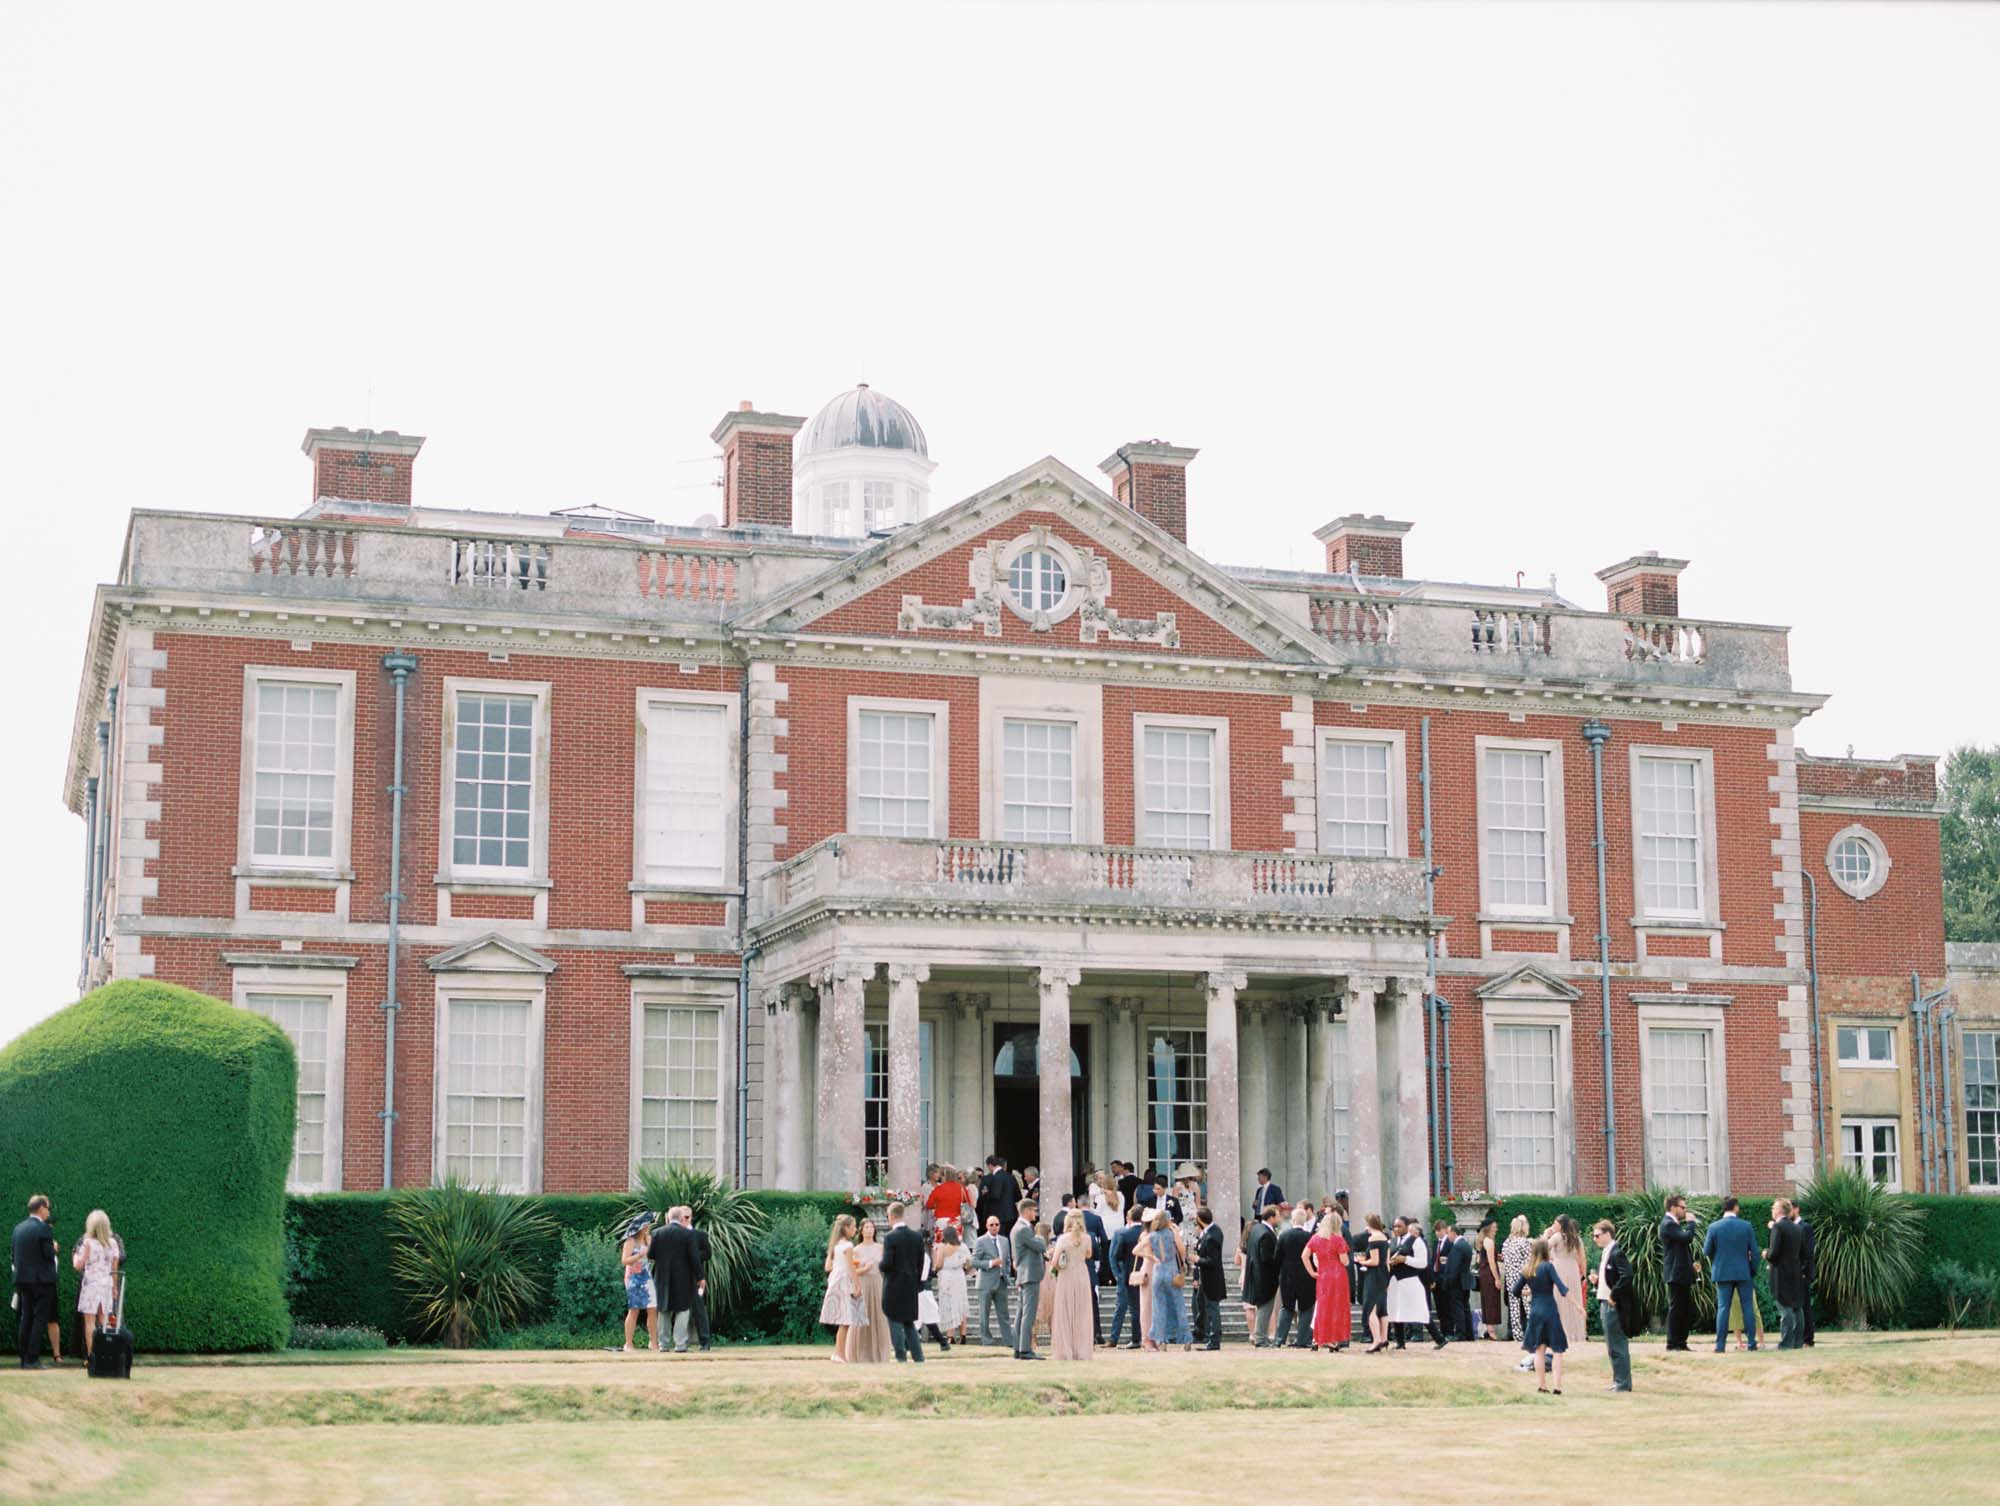 Wedding guests mingling at the rear of Stansted House wedding